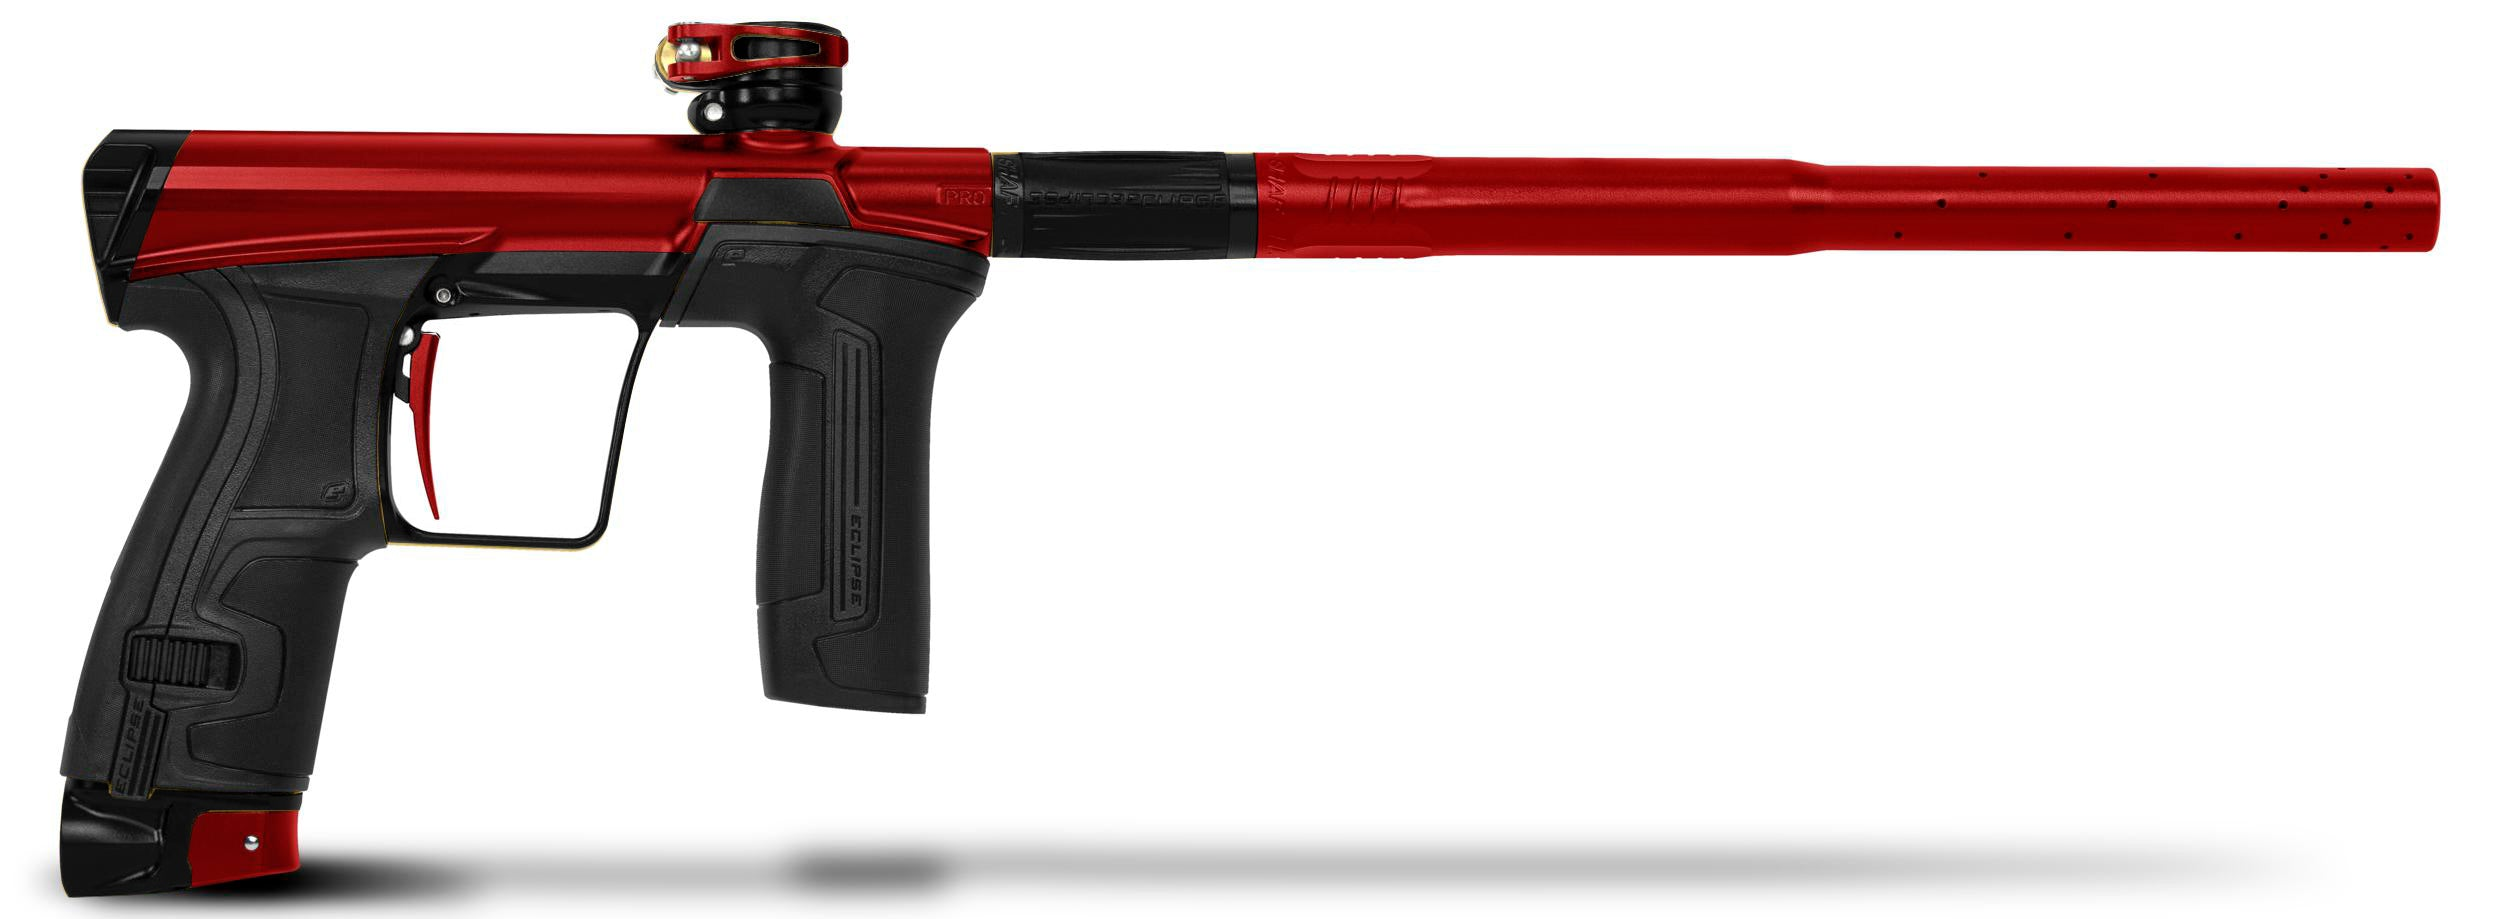 Planet Eclipse CS2 Pro Paintball Marker - Red / Black